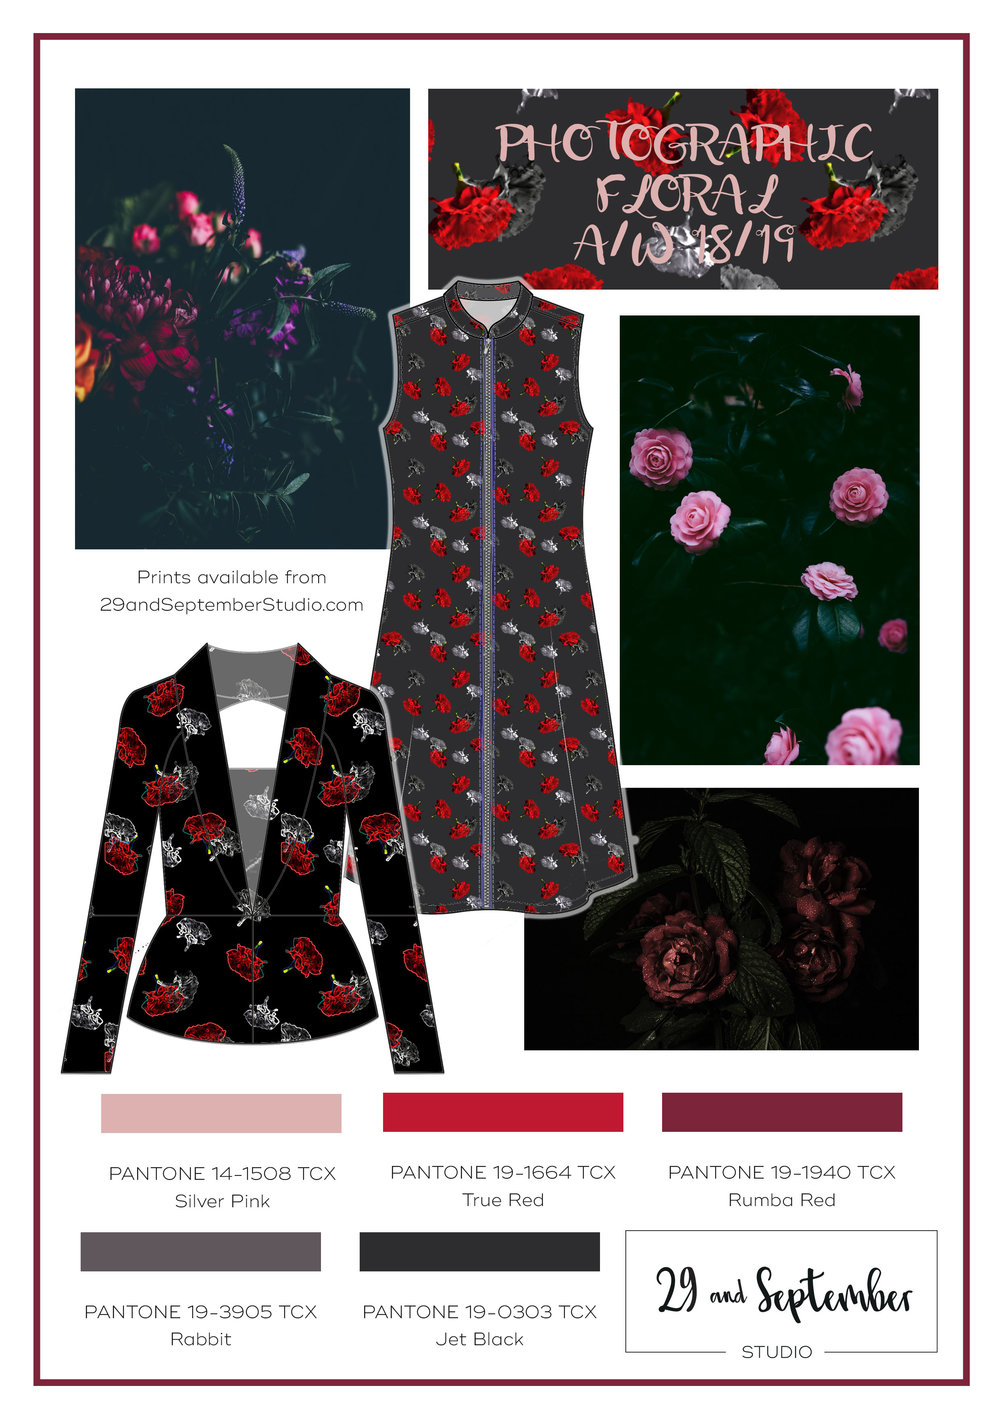 F/W 2018/19 Fashion Trend; Photographic Floral | technical drawings for apparel by 29andSeptember Studio | Free fashion trend information | WGSN